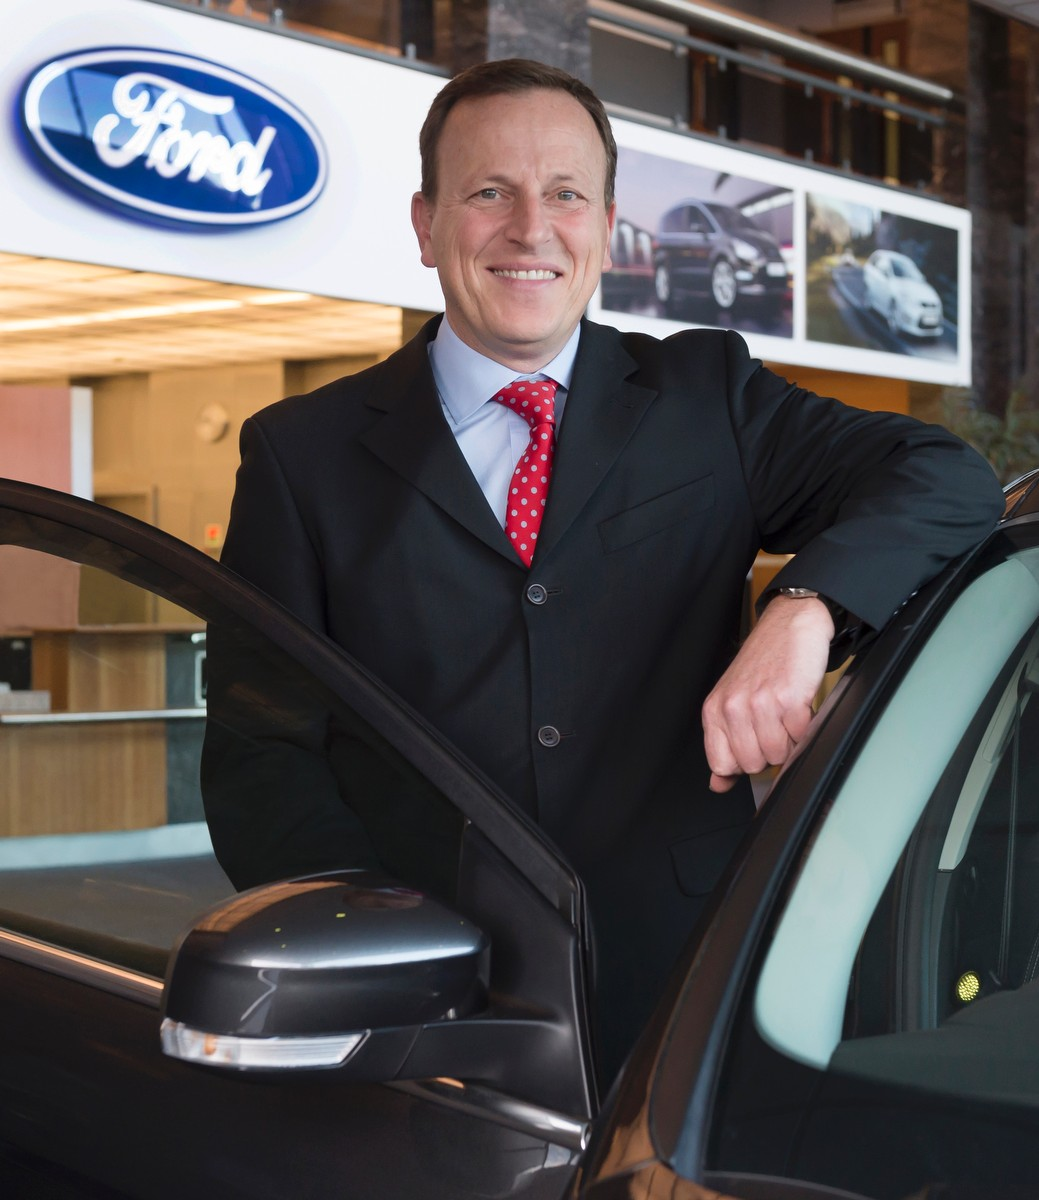 Ford's new Fleet Director Nick Themistocleus-1